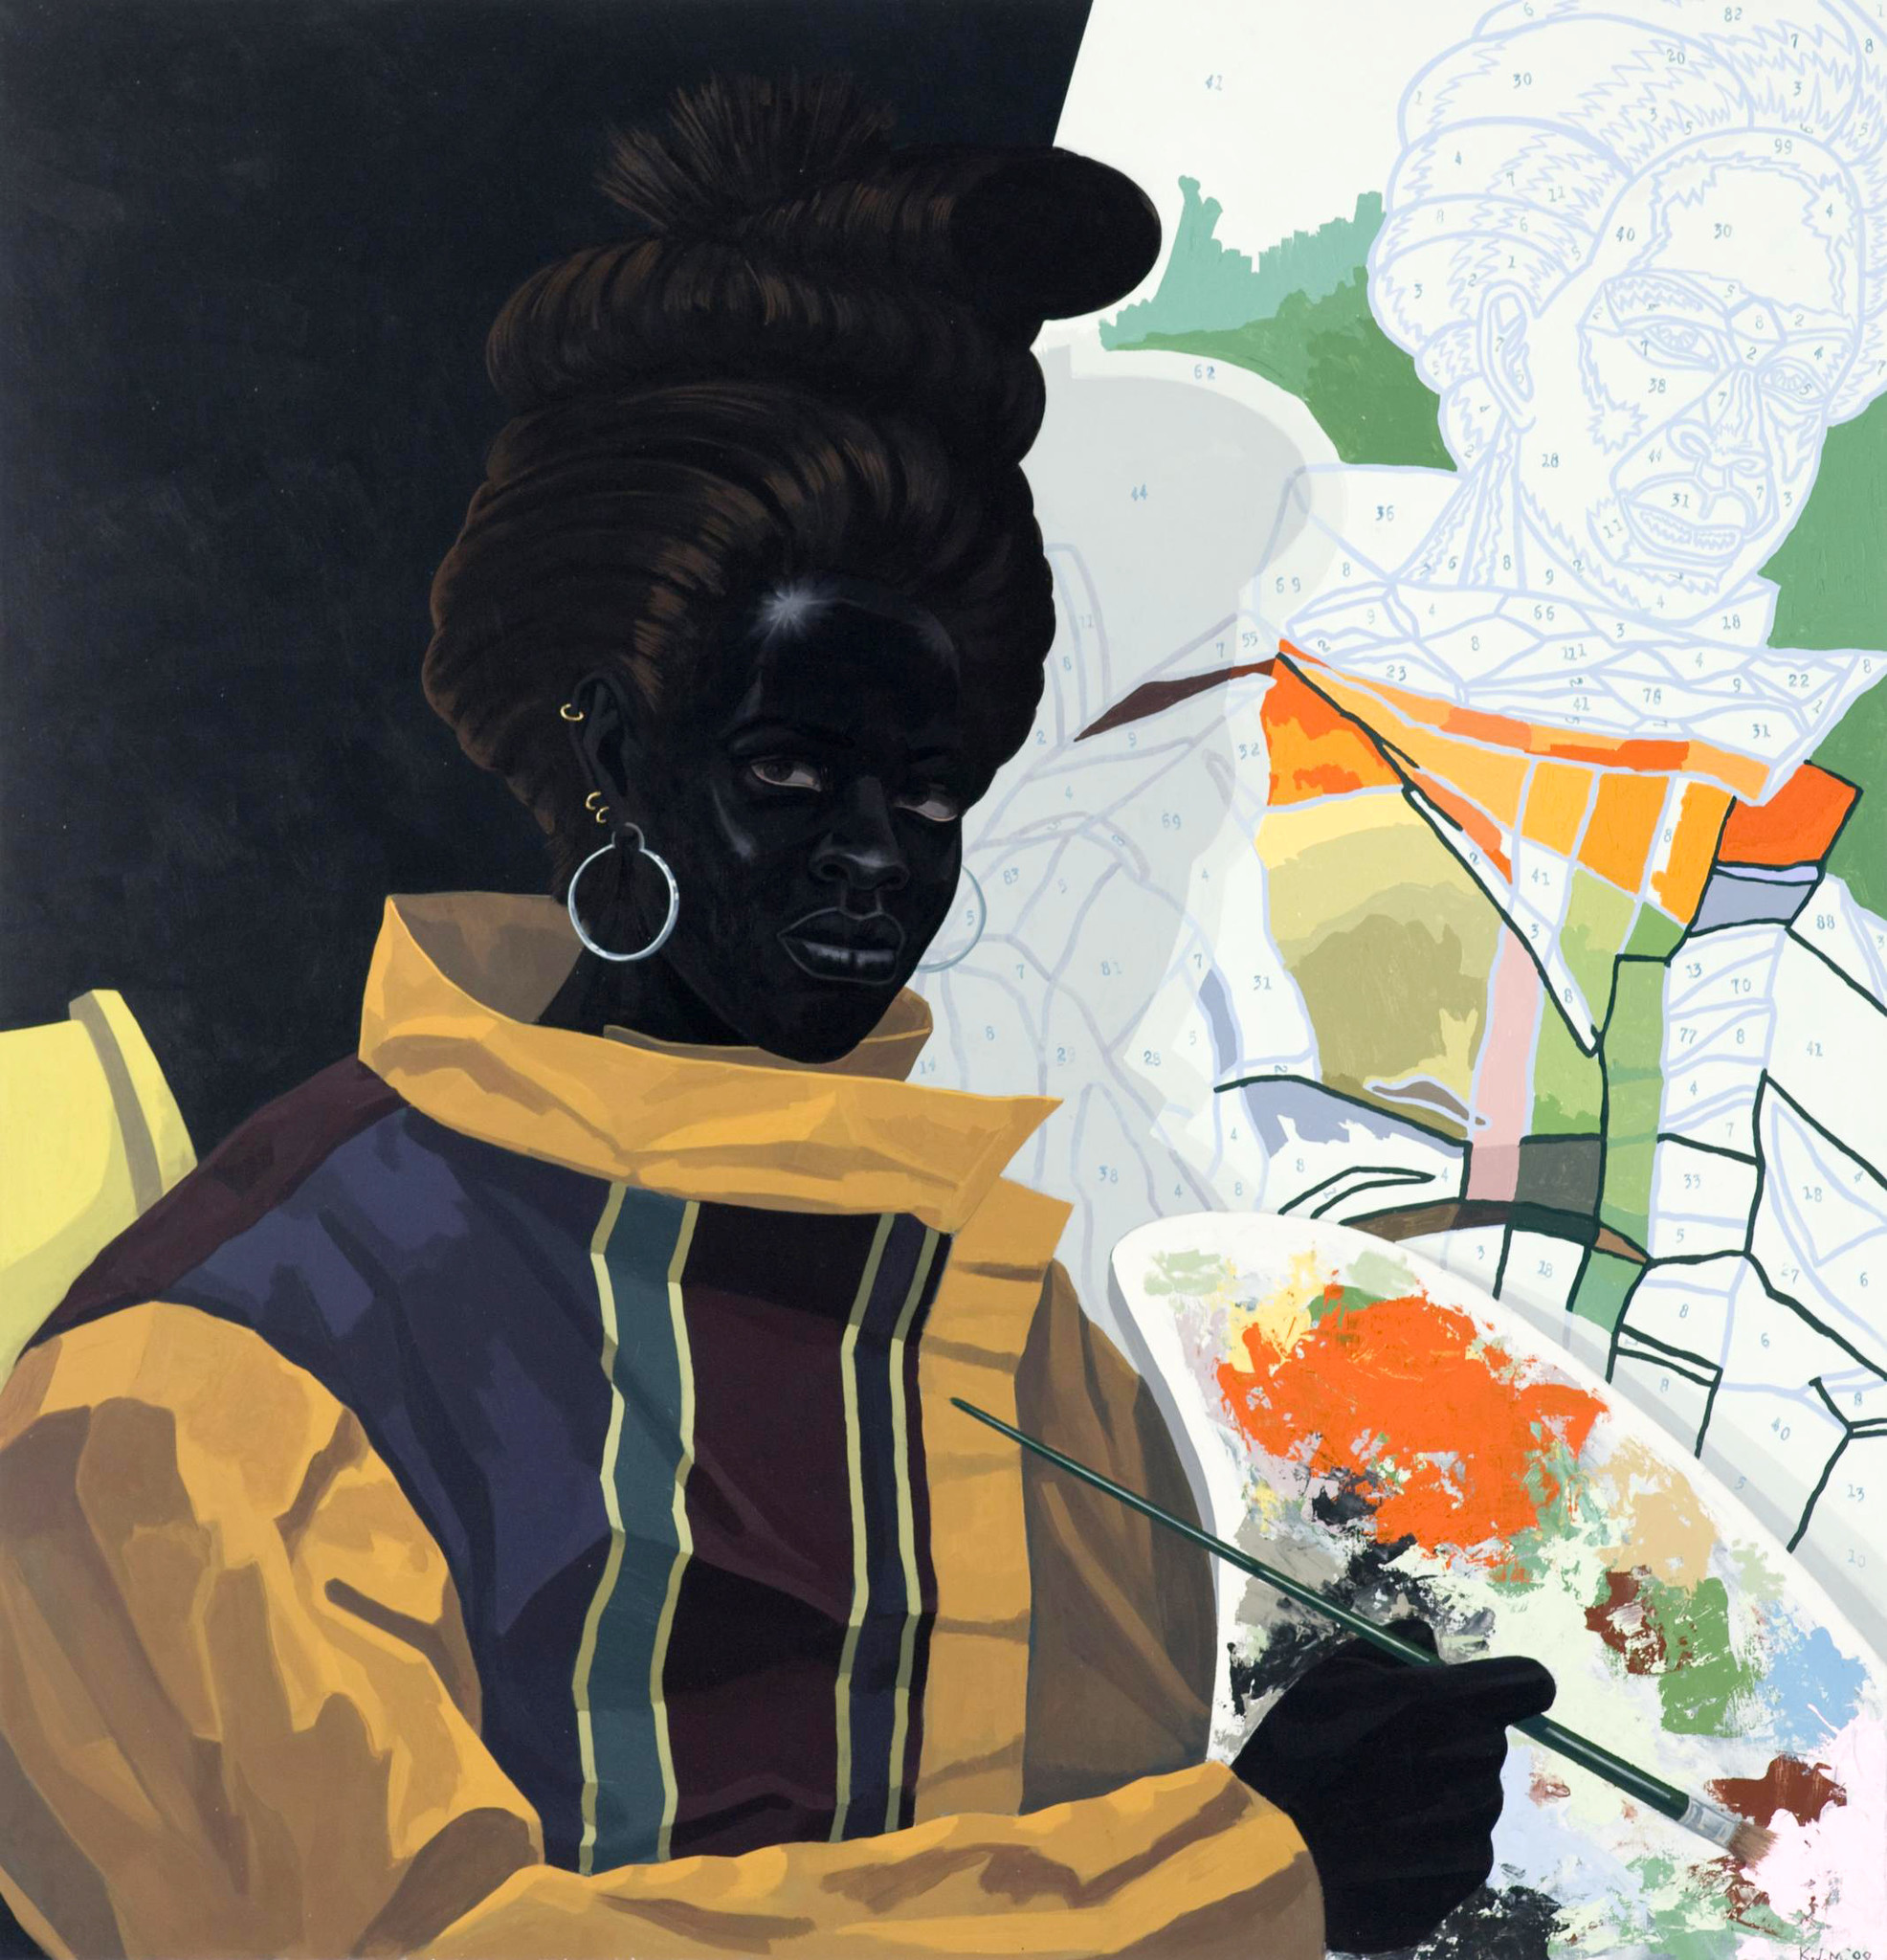 Kerry James Marshall's Untitled (Painter), 2009.